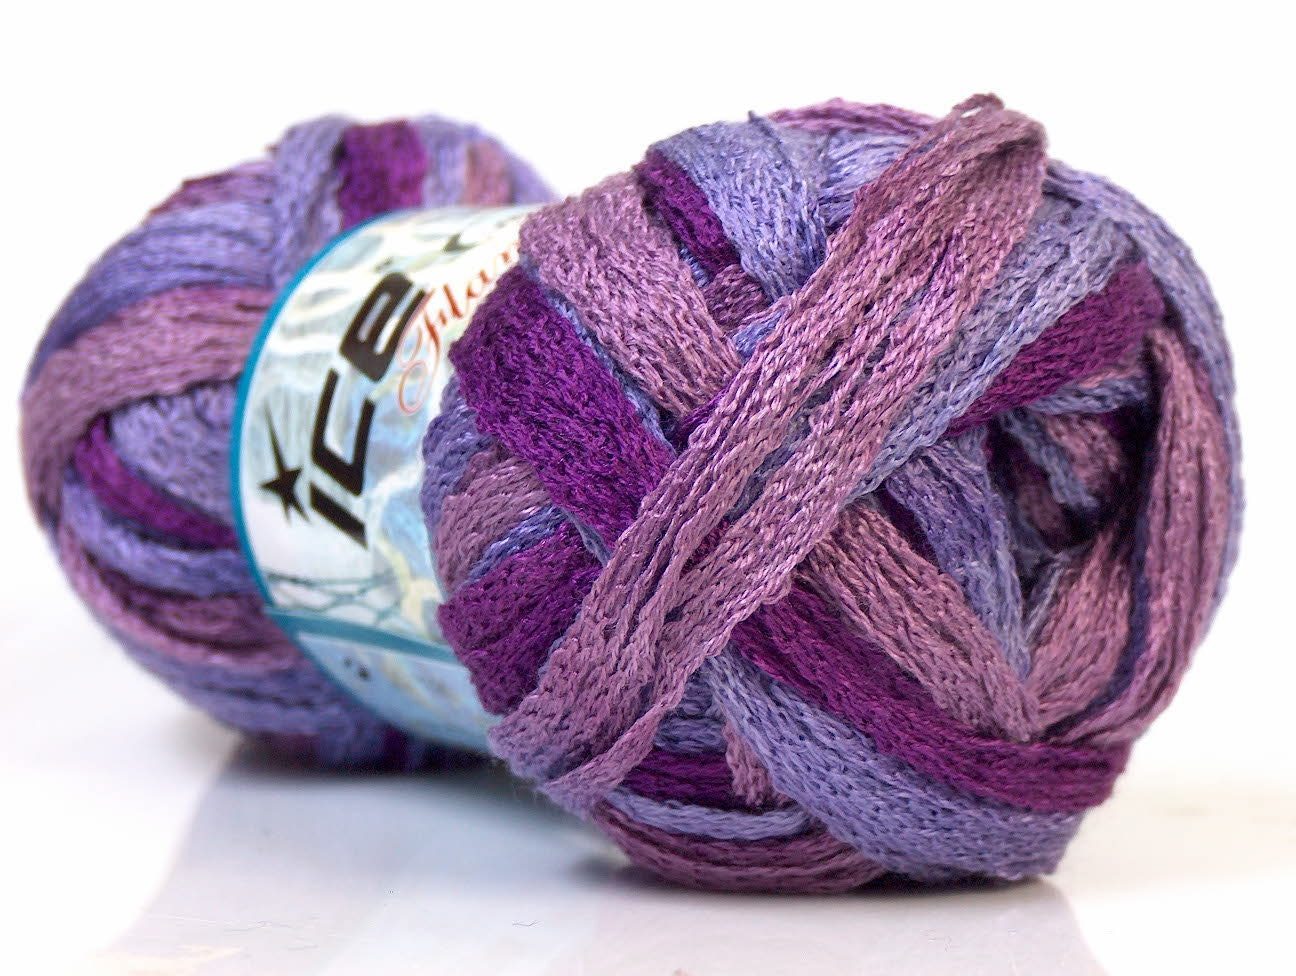 ruffle scarf yarn yarns flamenco lilac pink purple